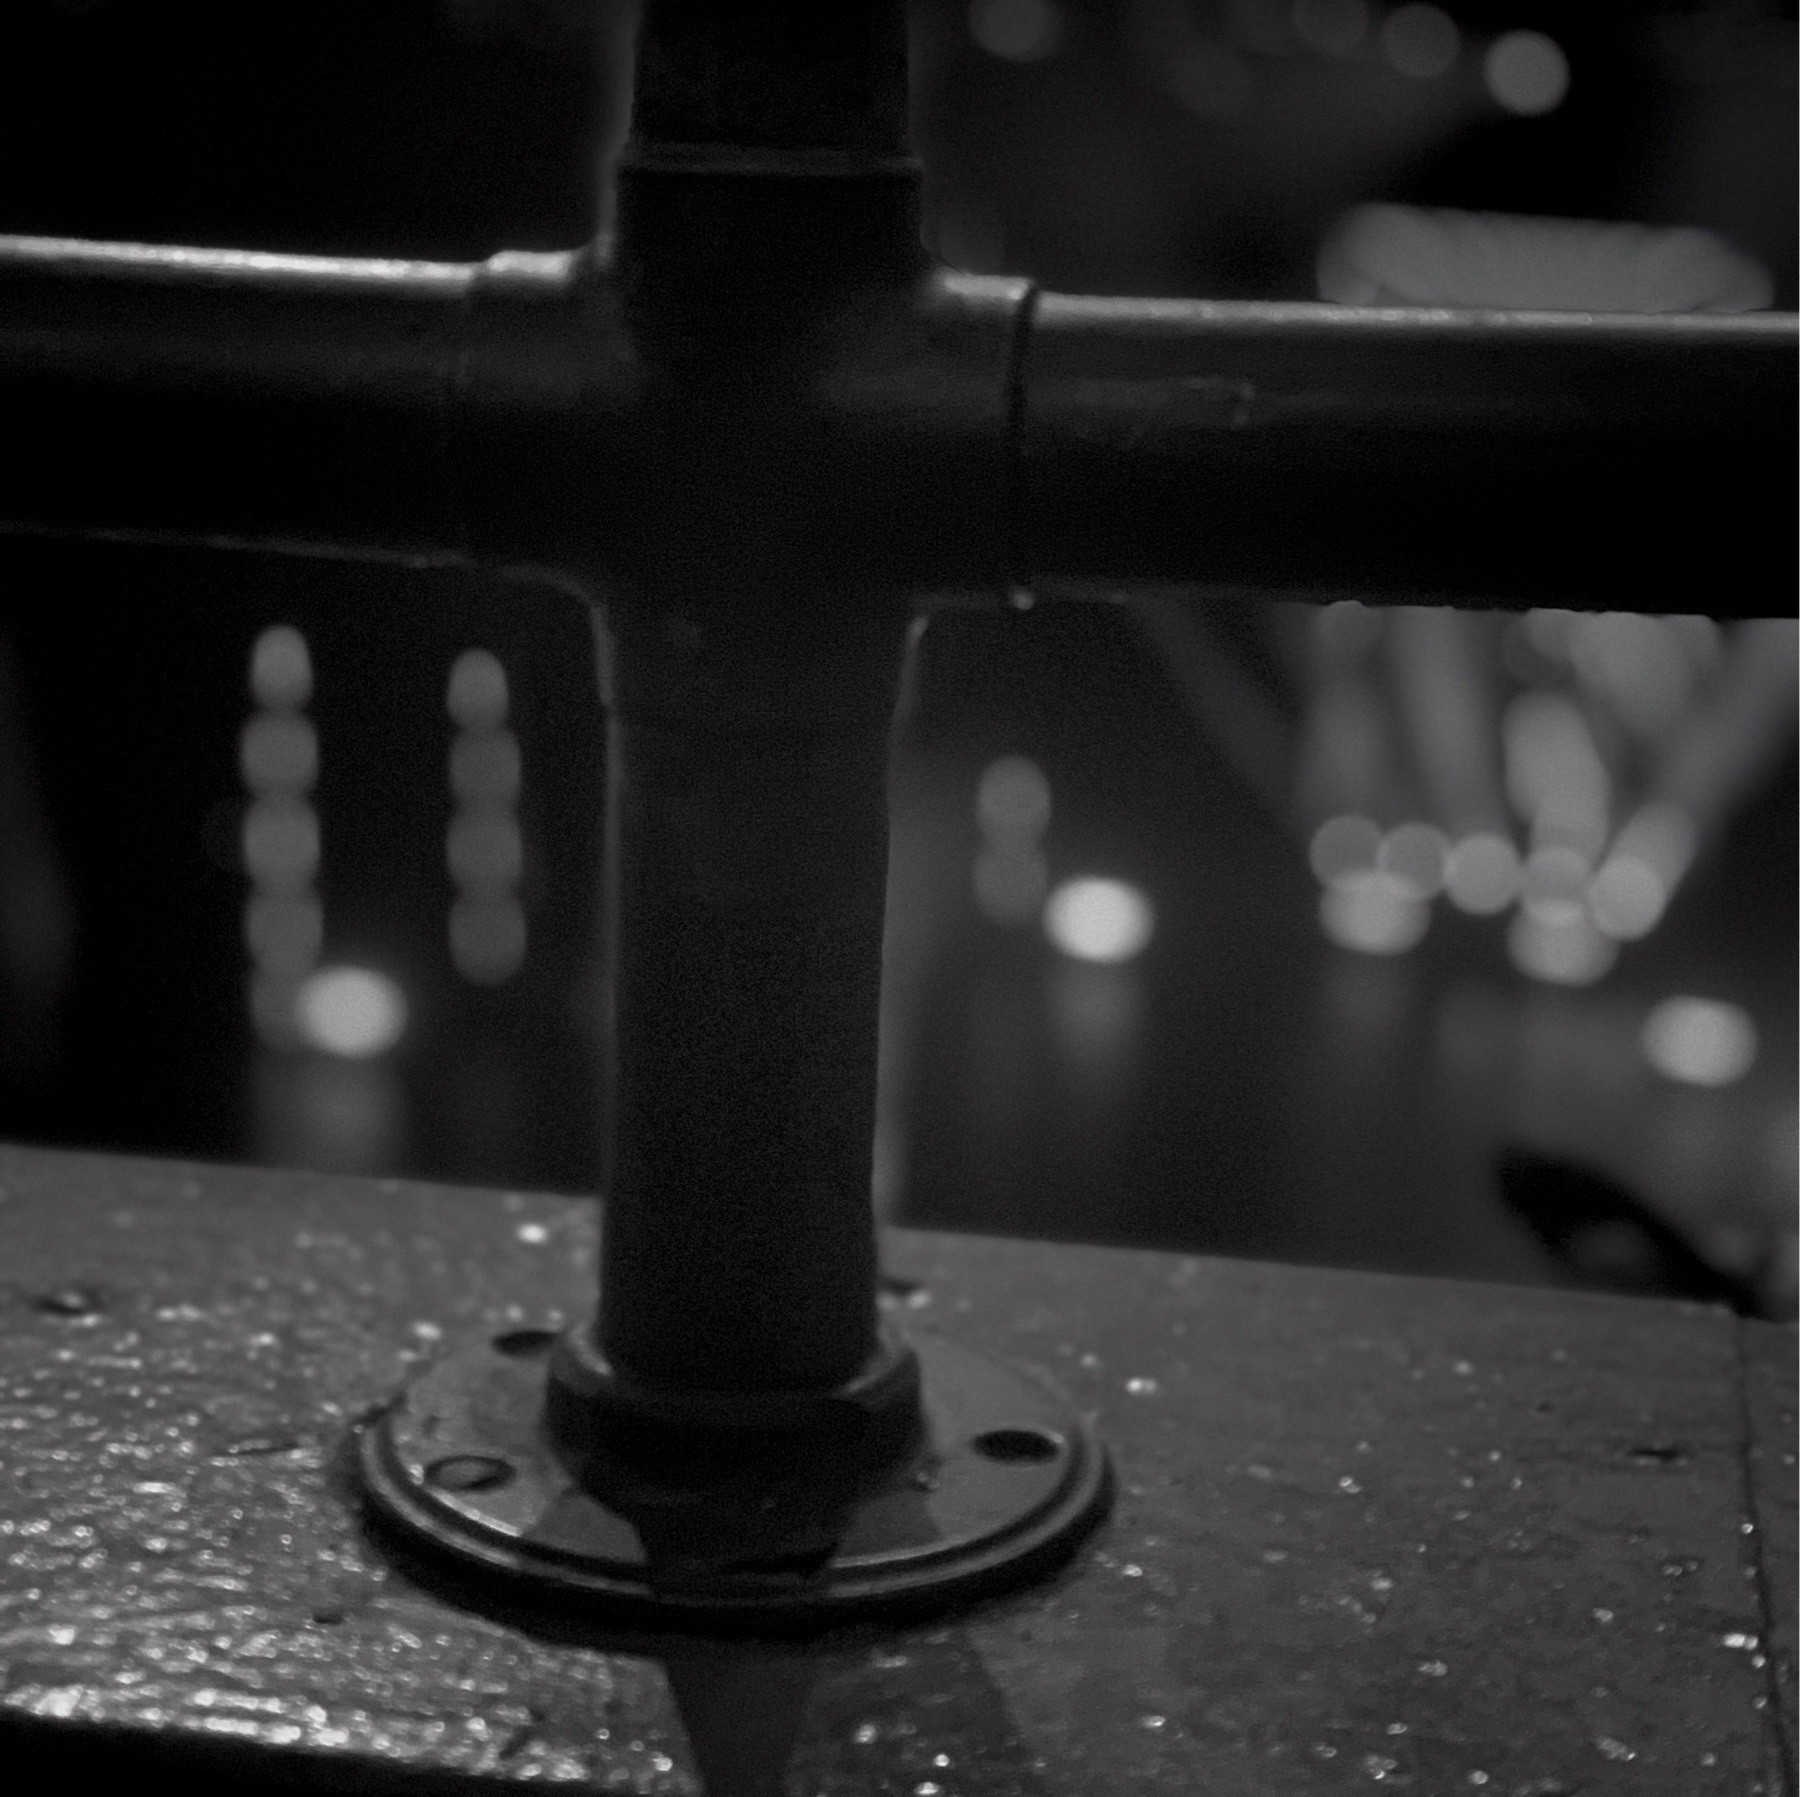 Rail on the balcony with blurred lit stage in background.